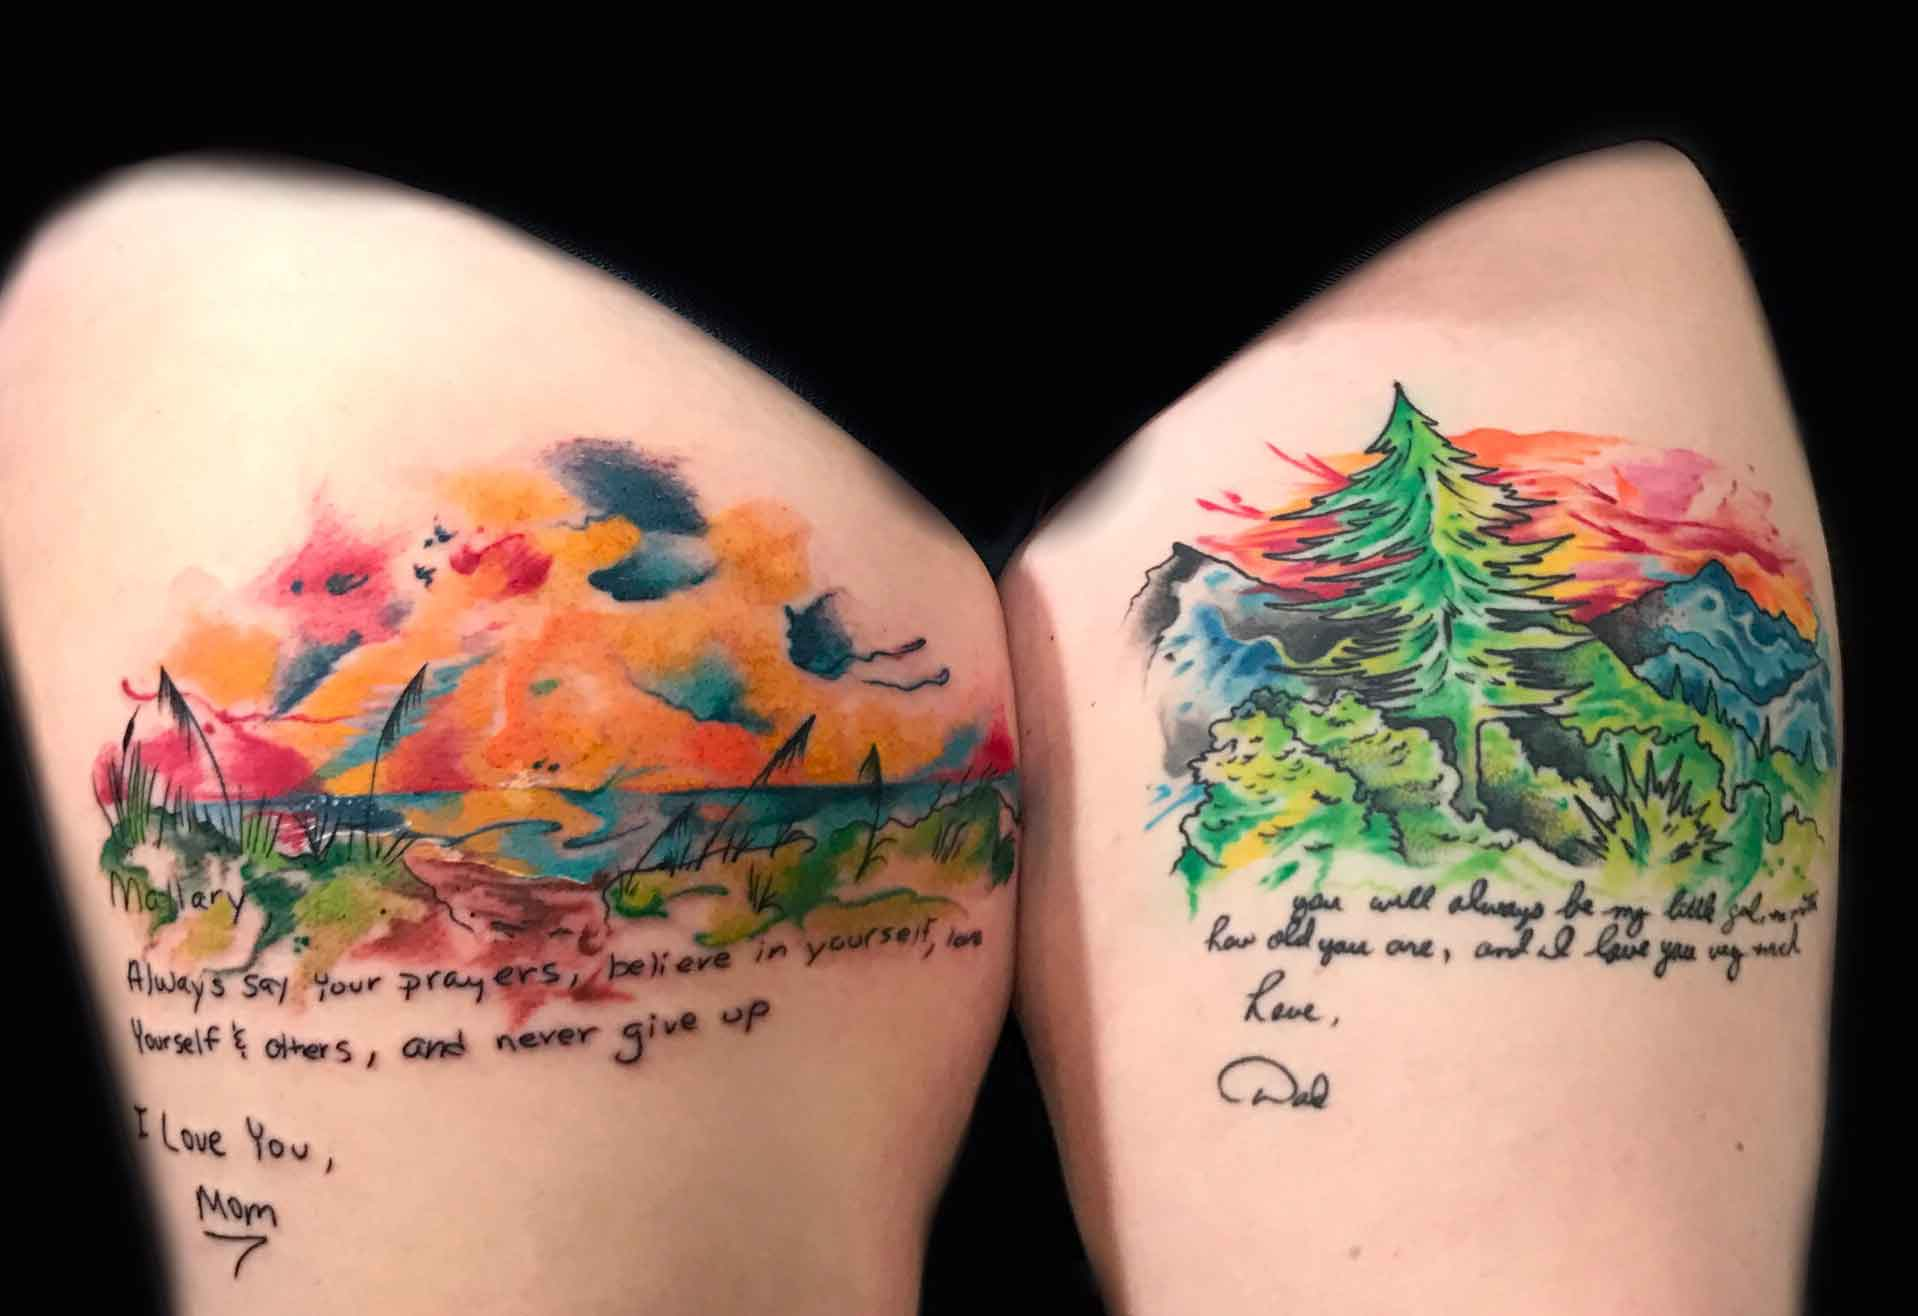 watercolor-tattoo-of-sunset-by-Roger-Solis-in-San-Diego